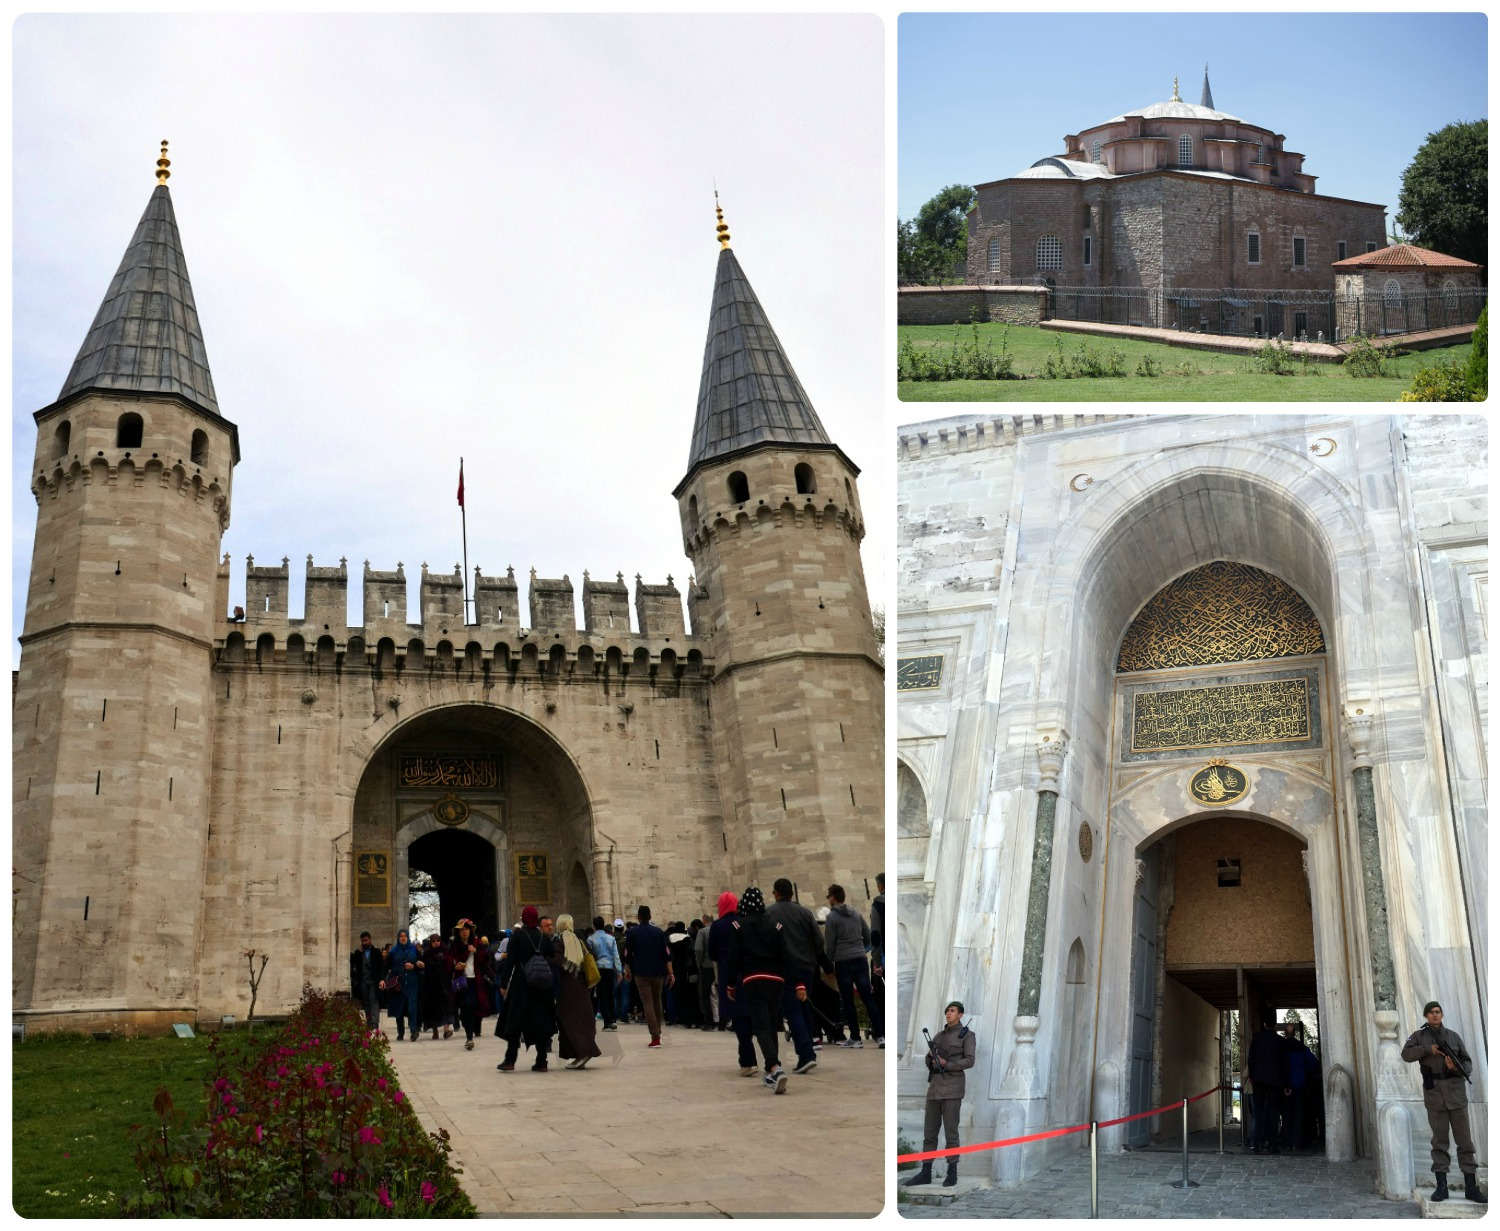 Clockwise: The Imperial Gate to enter Topkapi Palace, the Little Hagia Sophia, the gate and security checkpoint to enter the Topkapi Palace grounds.